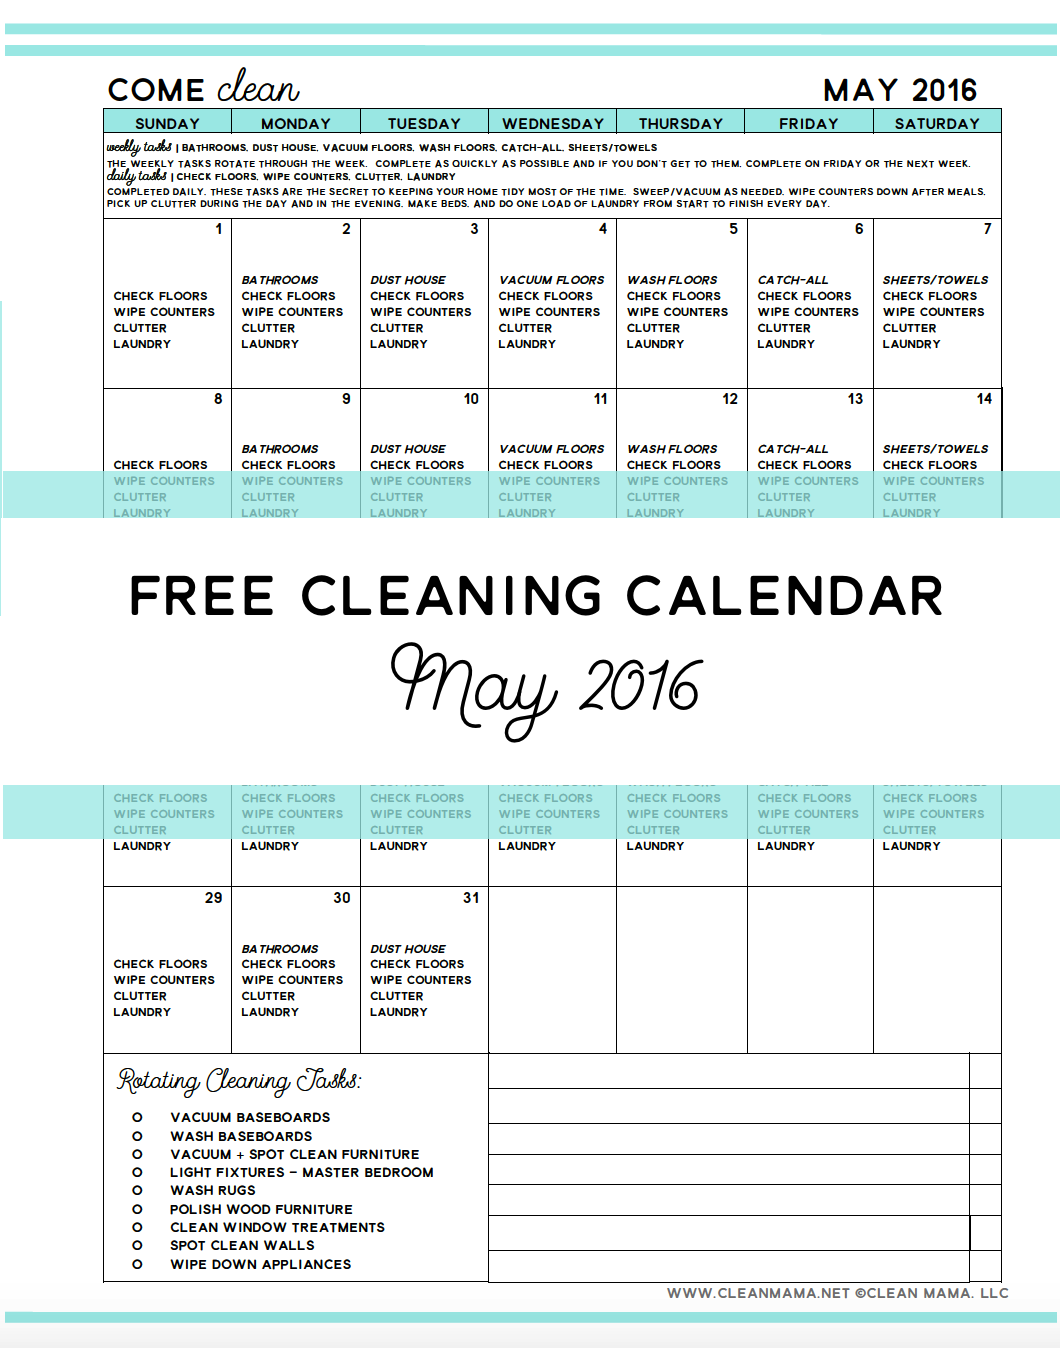 Come Clean Free Cleaning Calendar For May 2016 Clean Mama